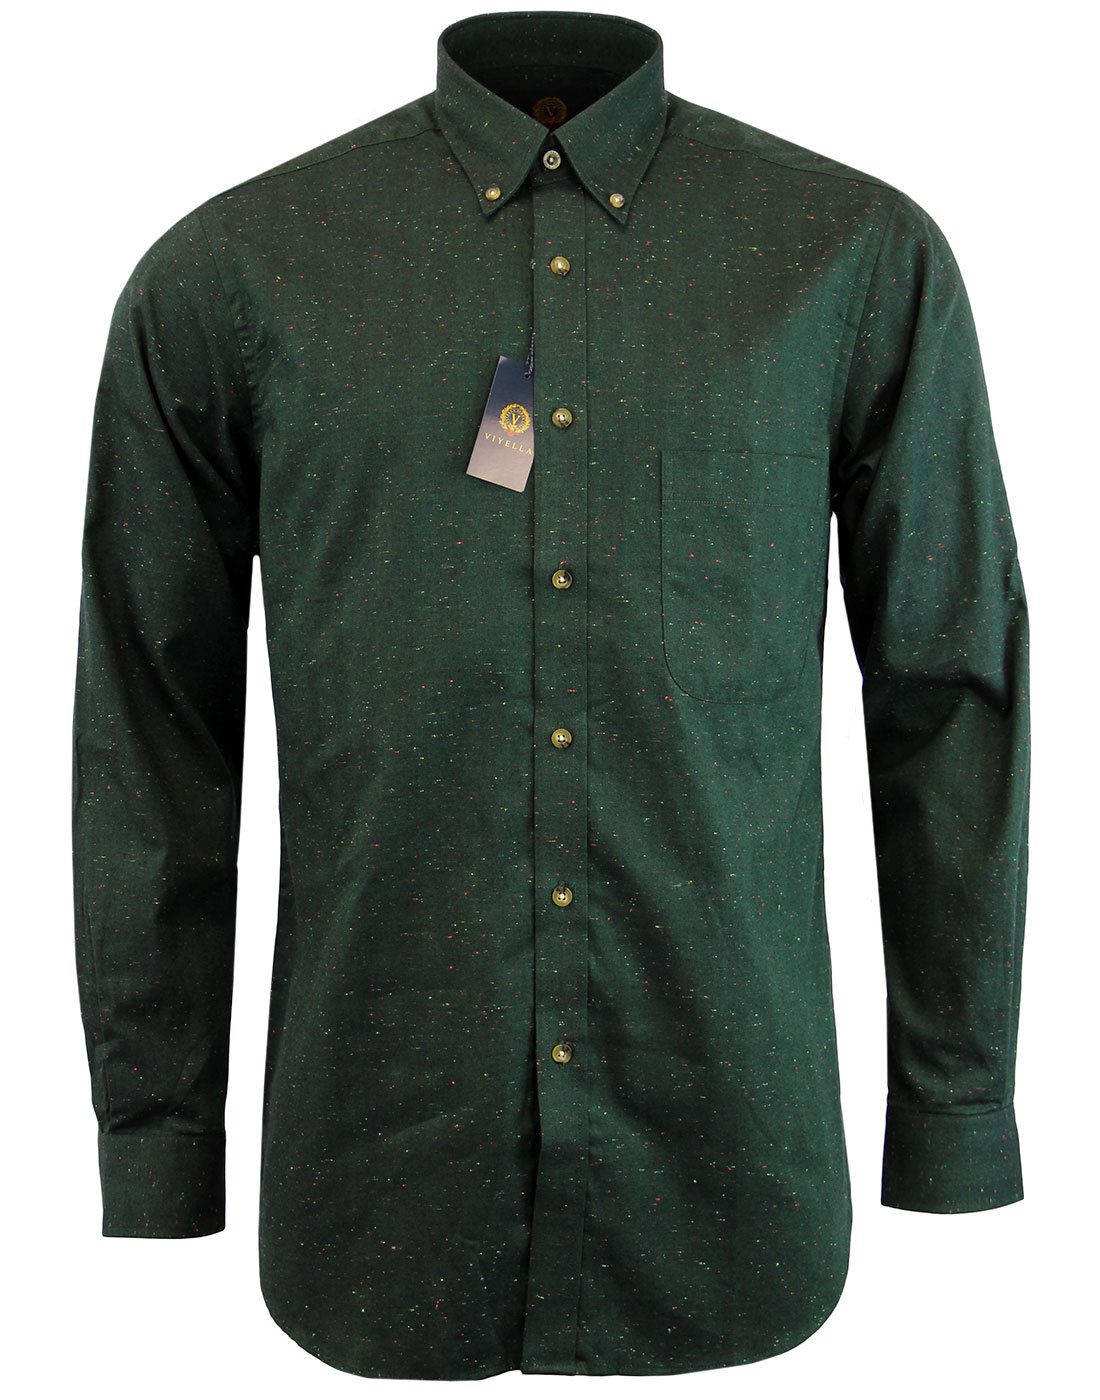 VIYELLA Retro Herringbone Donegal Nep Shirt (G)